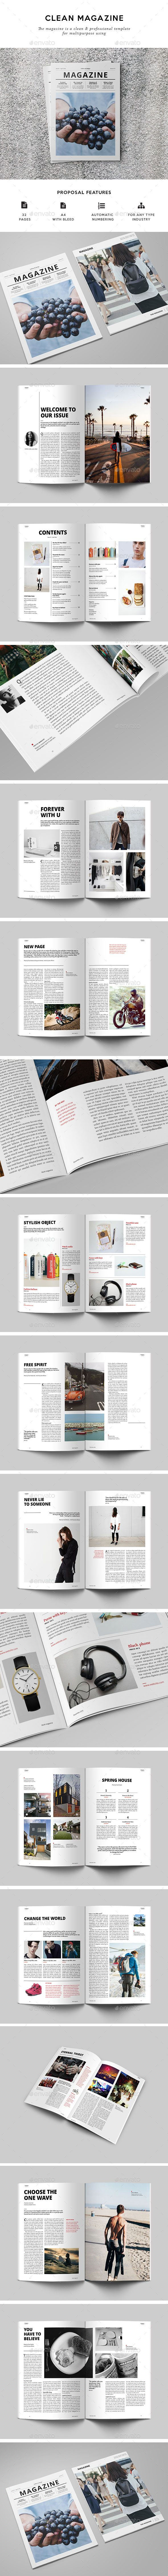 861 best Layouts images on Pinterest   Editorial design, Layout ...